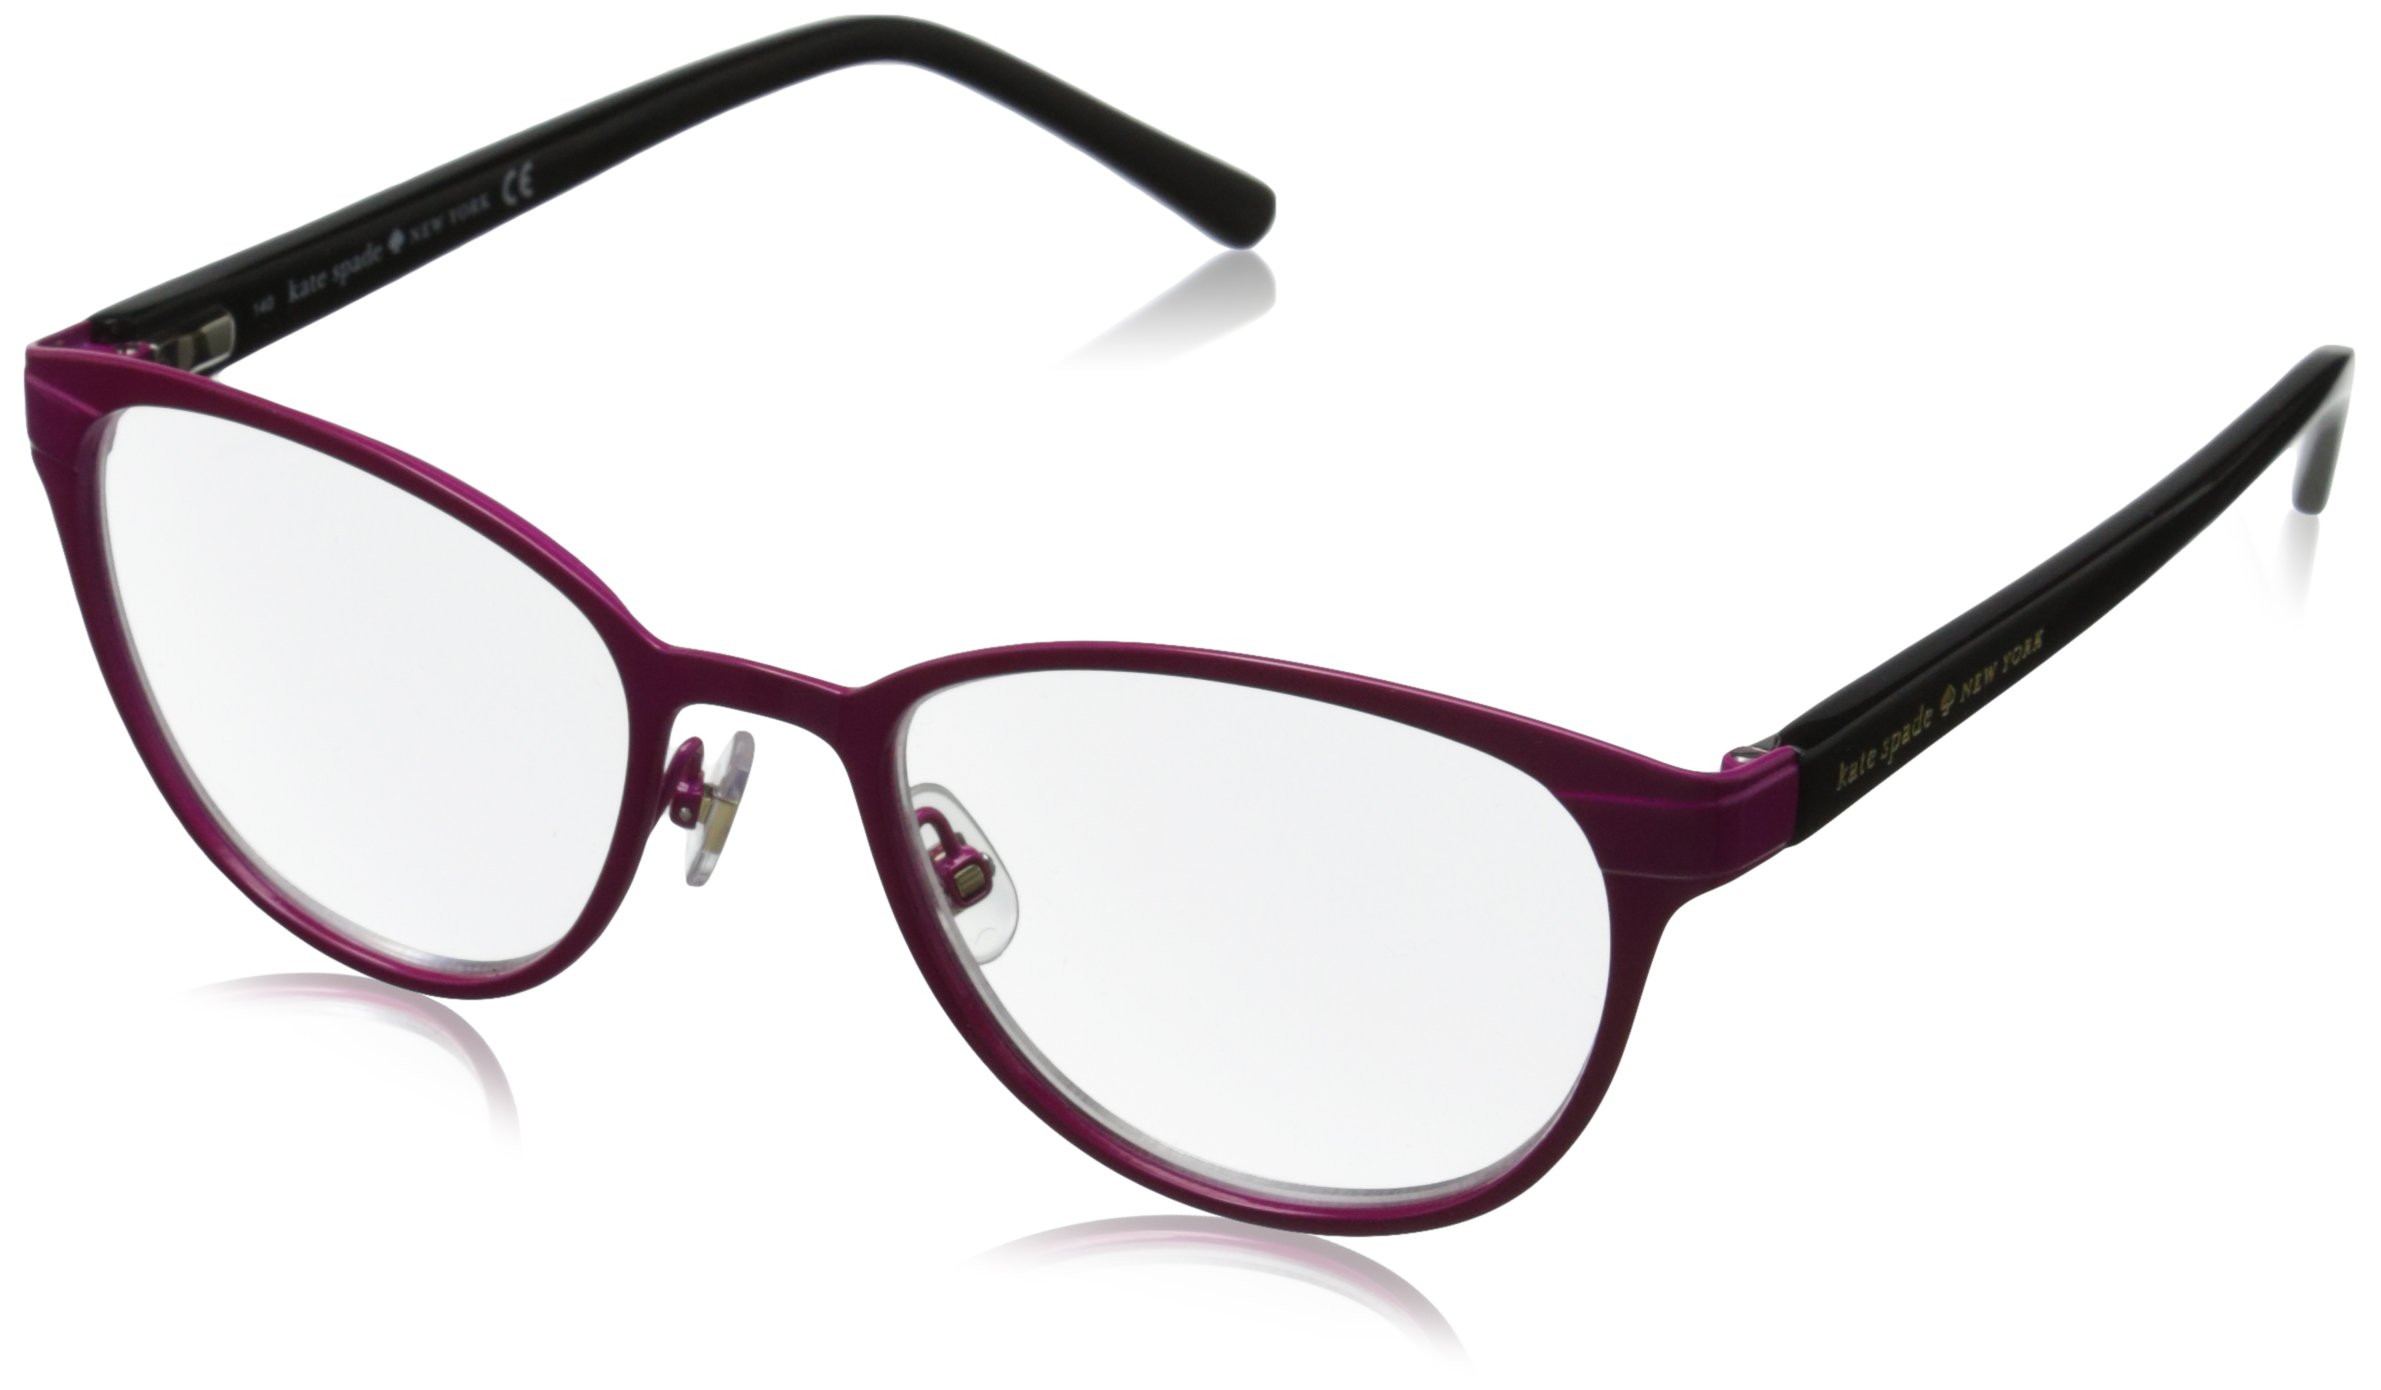 Kate Spade Women's Ebba Oval Reading Glasses, Pink Black 2.5 & Clear, 2.5